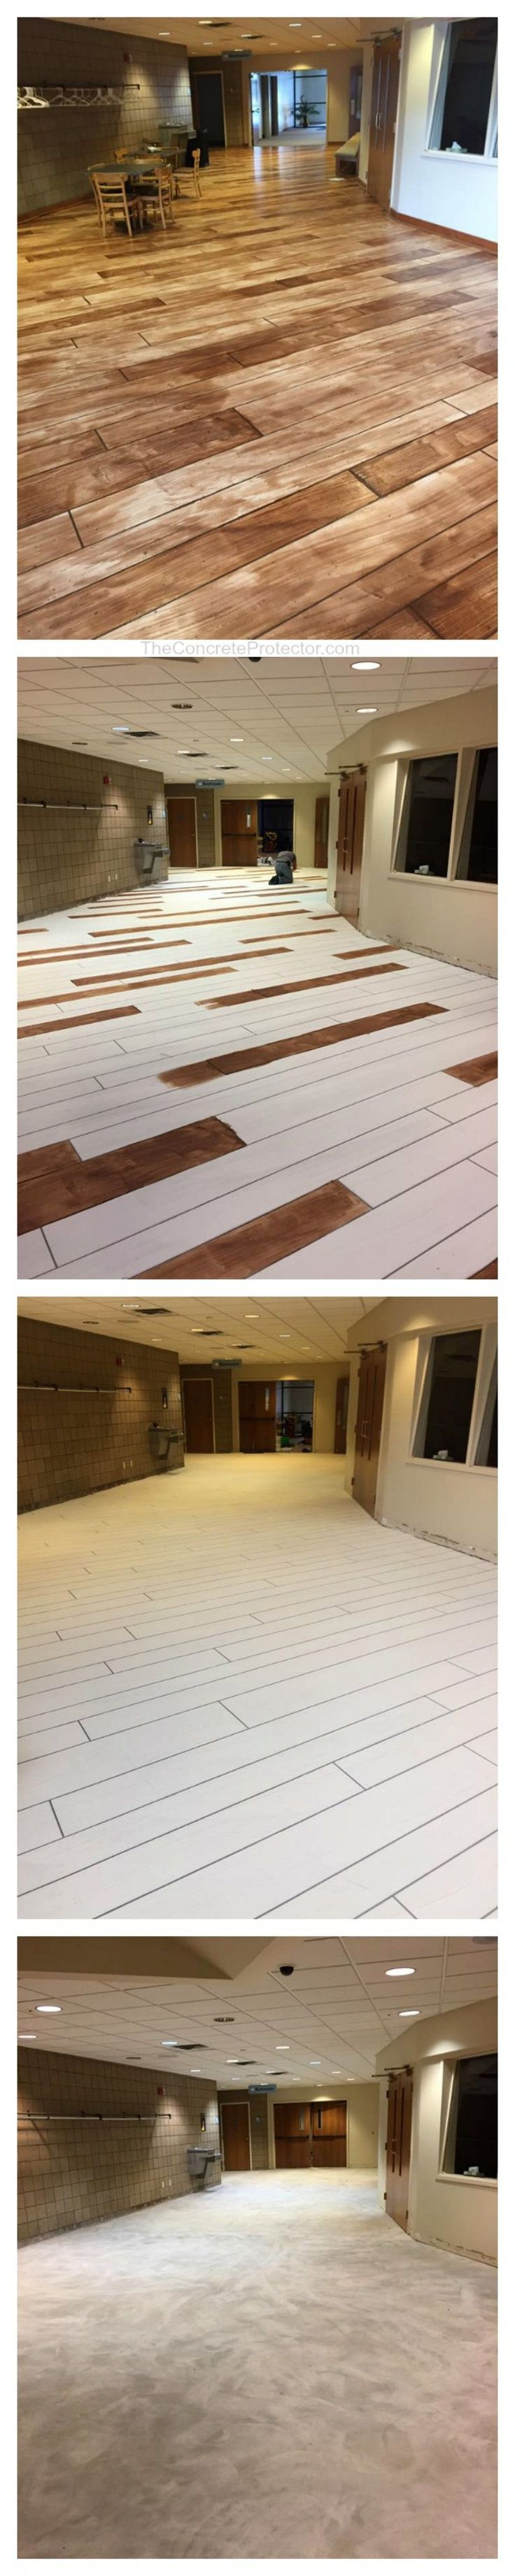 Rapid City/ South Dakota/ Concrete Wood/ Concrete Staining/ Concrete Overlay/ Commercial